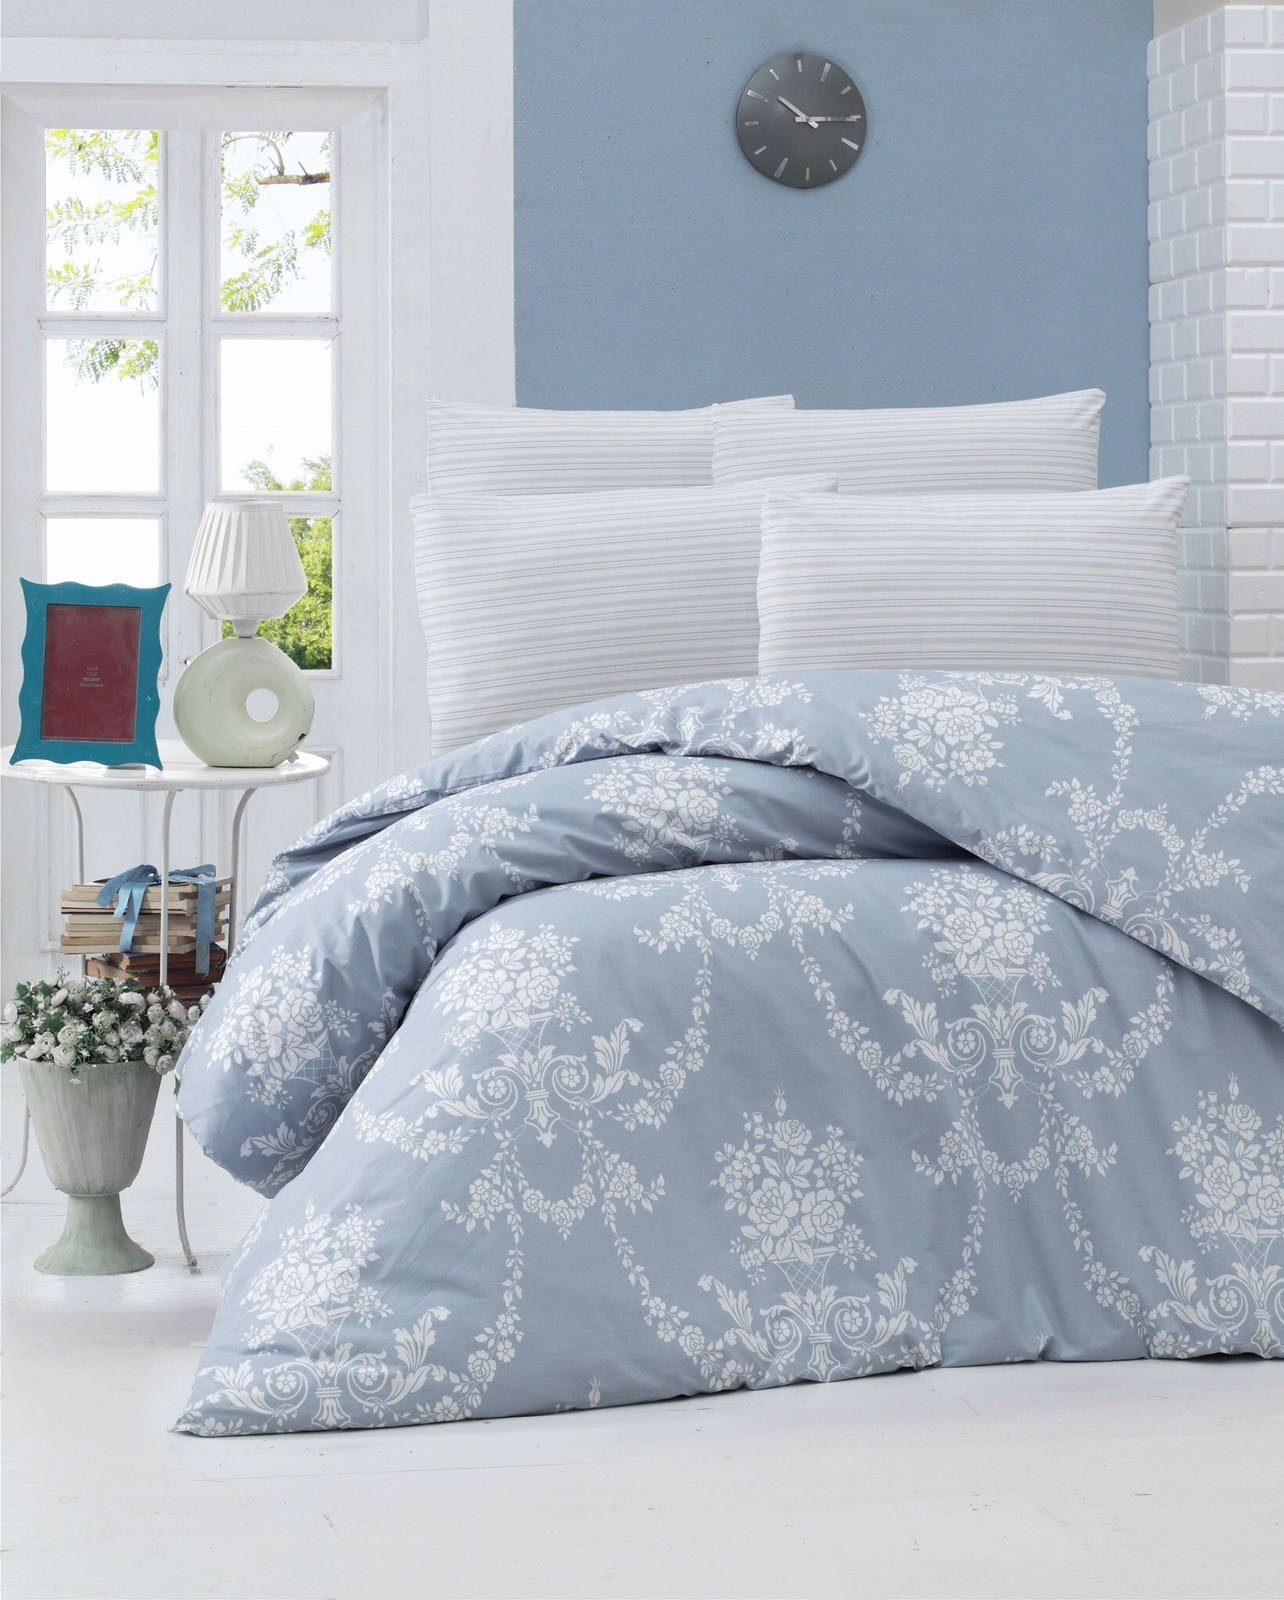 Dose Of Modern Gloria Blue Ranforce Single Quilt Cover Set Eu It 121vct12643 Blue White